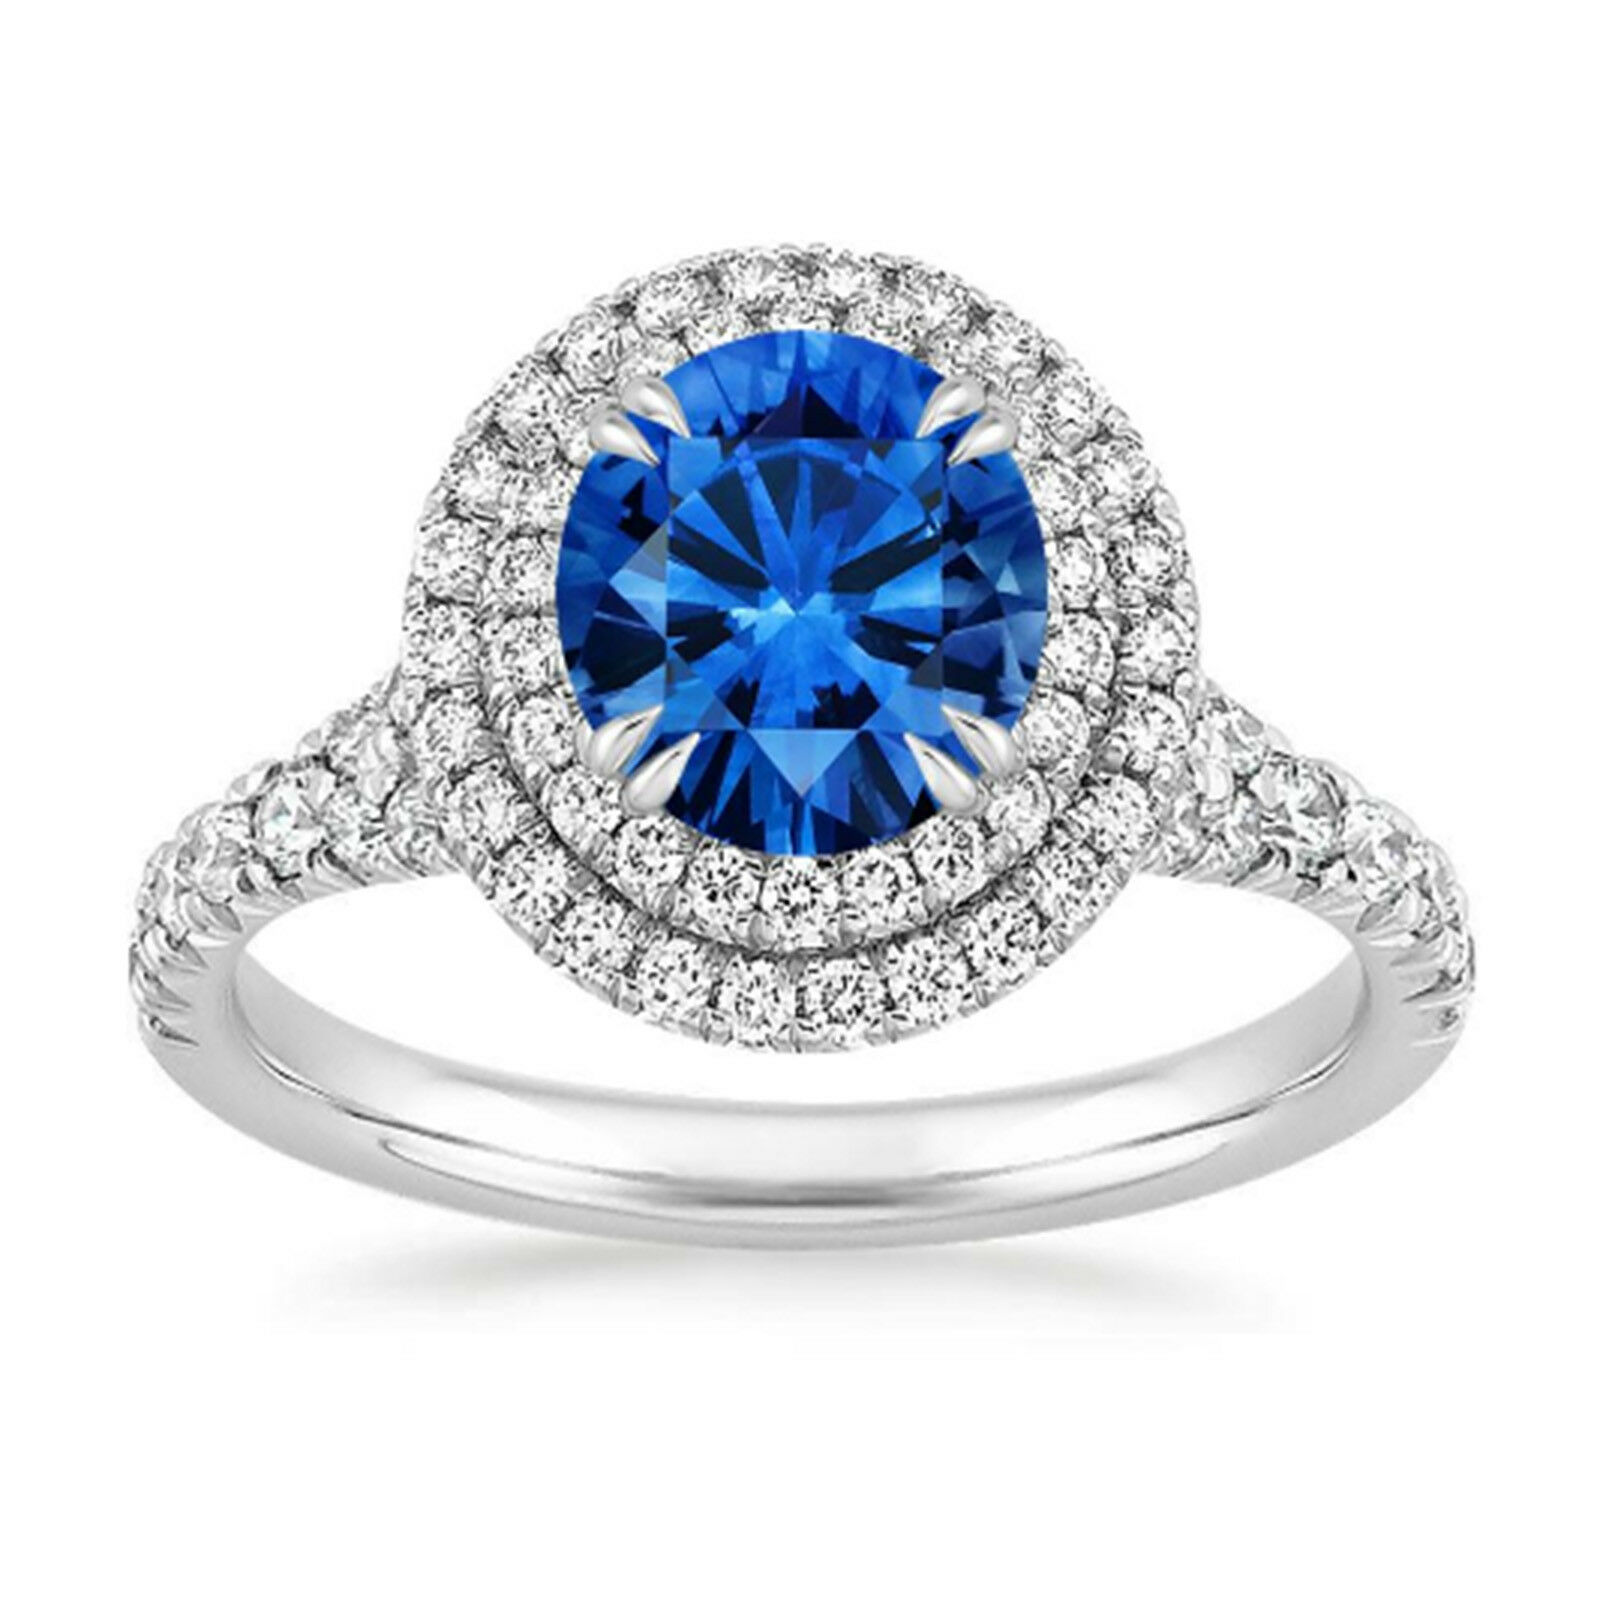 14K White gold Rings 1.65 Ct bluee Sapphire Diamond Engagement Ring Size 6 7.5